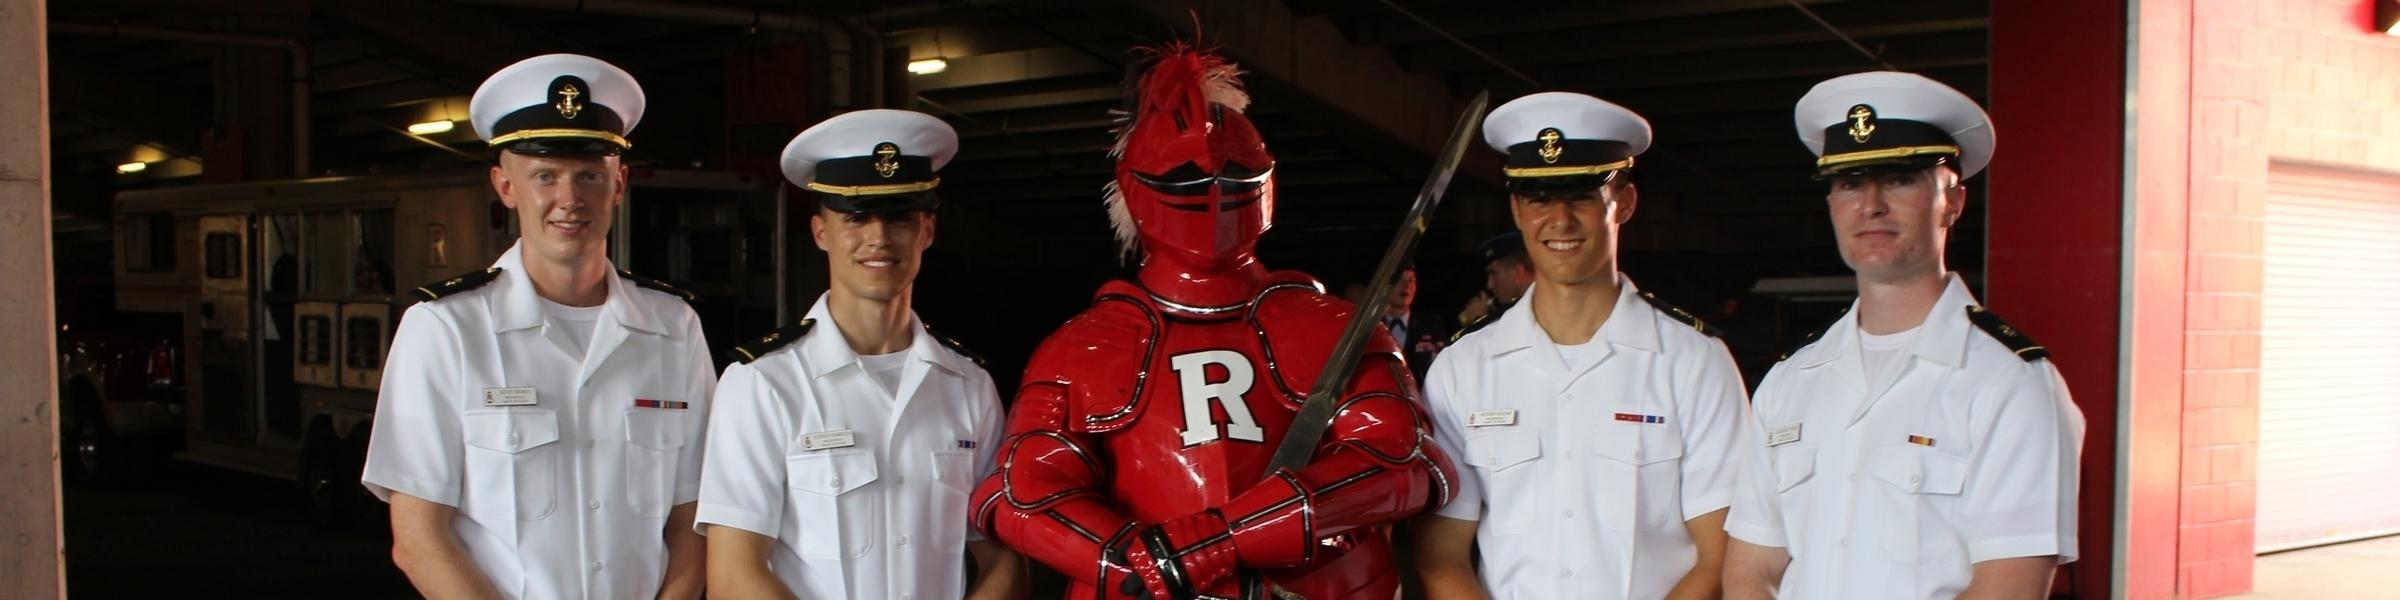 Scarlet Knight with Midshipmen at Military Appreciation Game